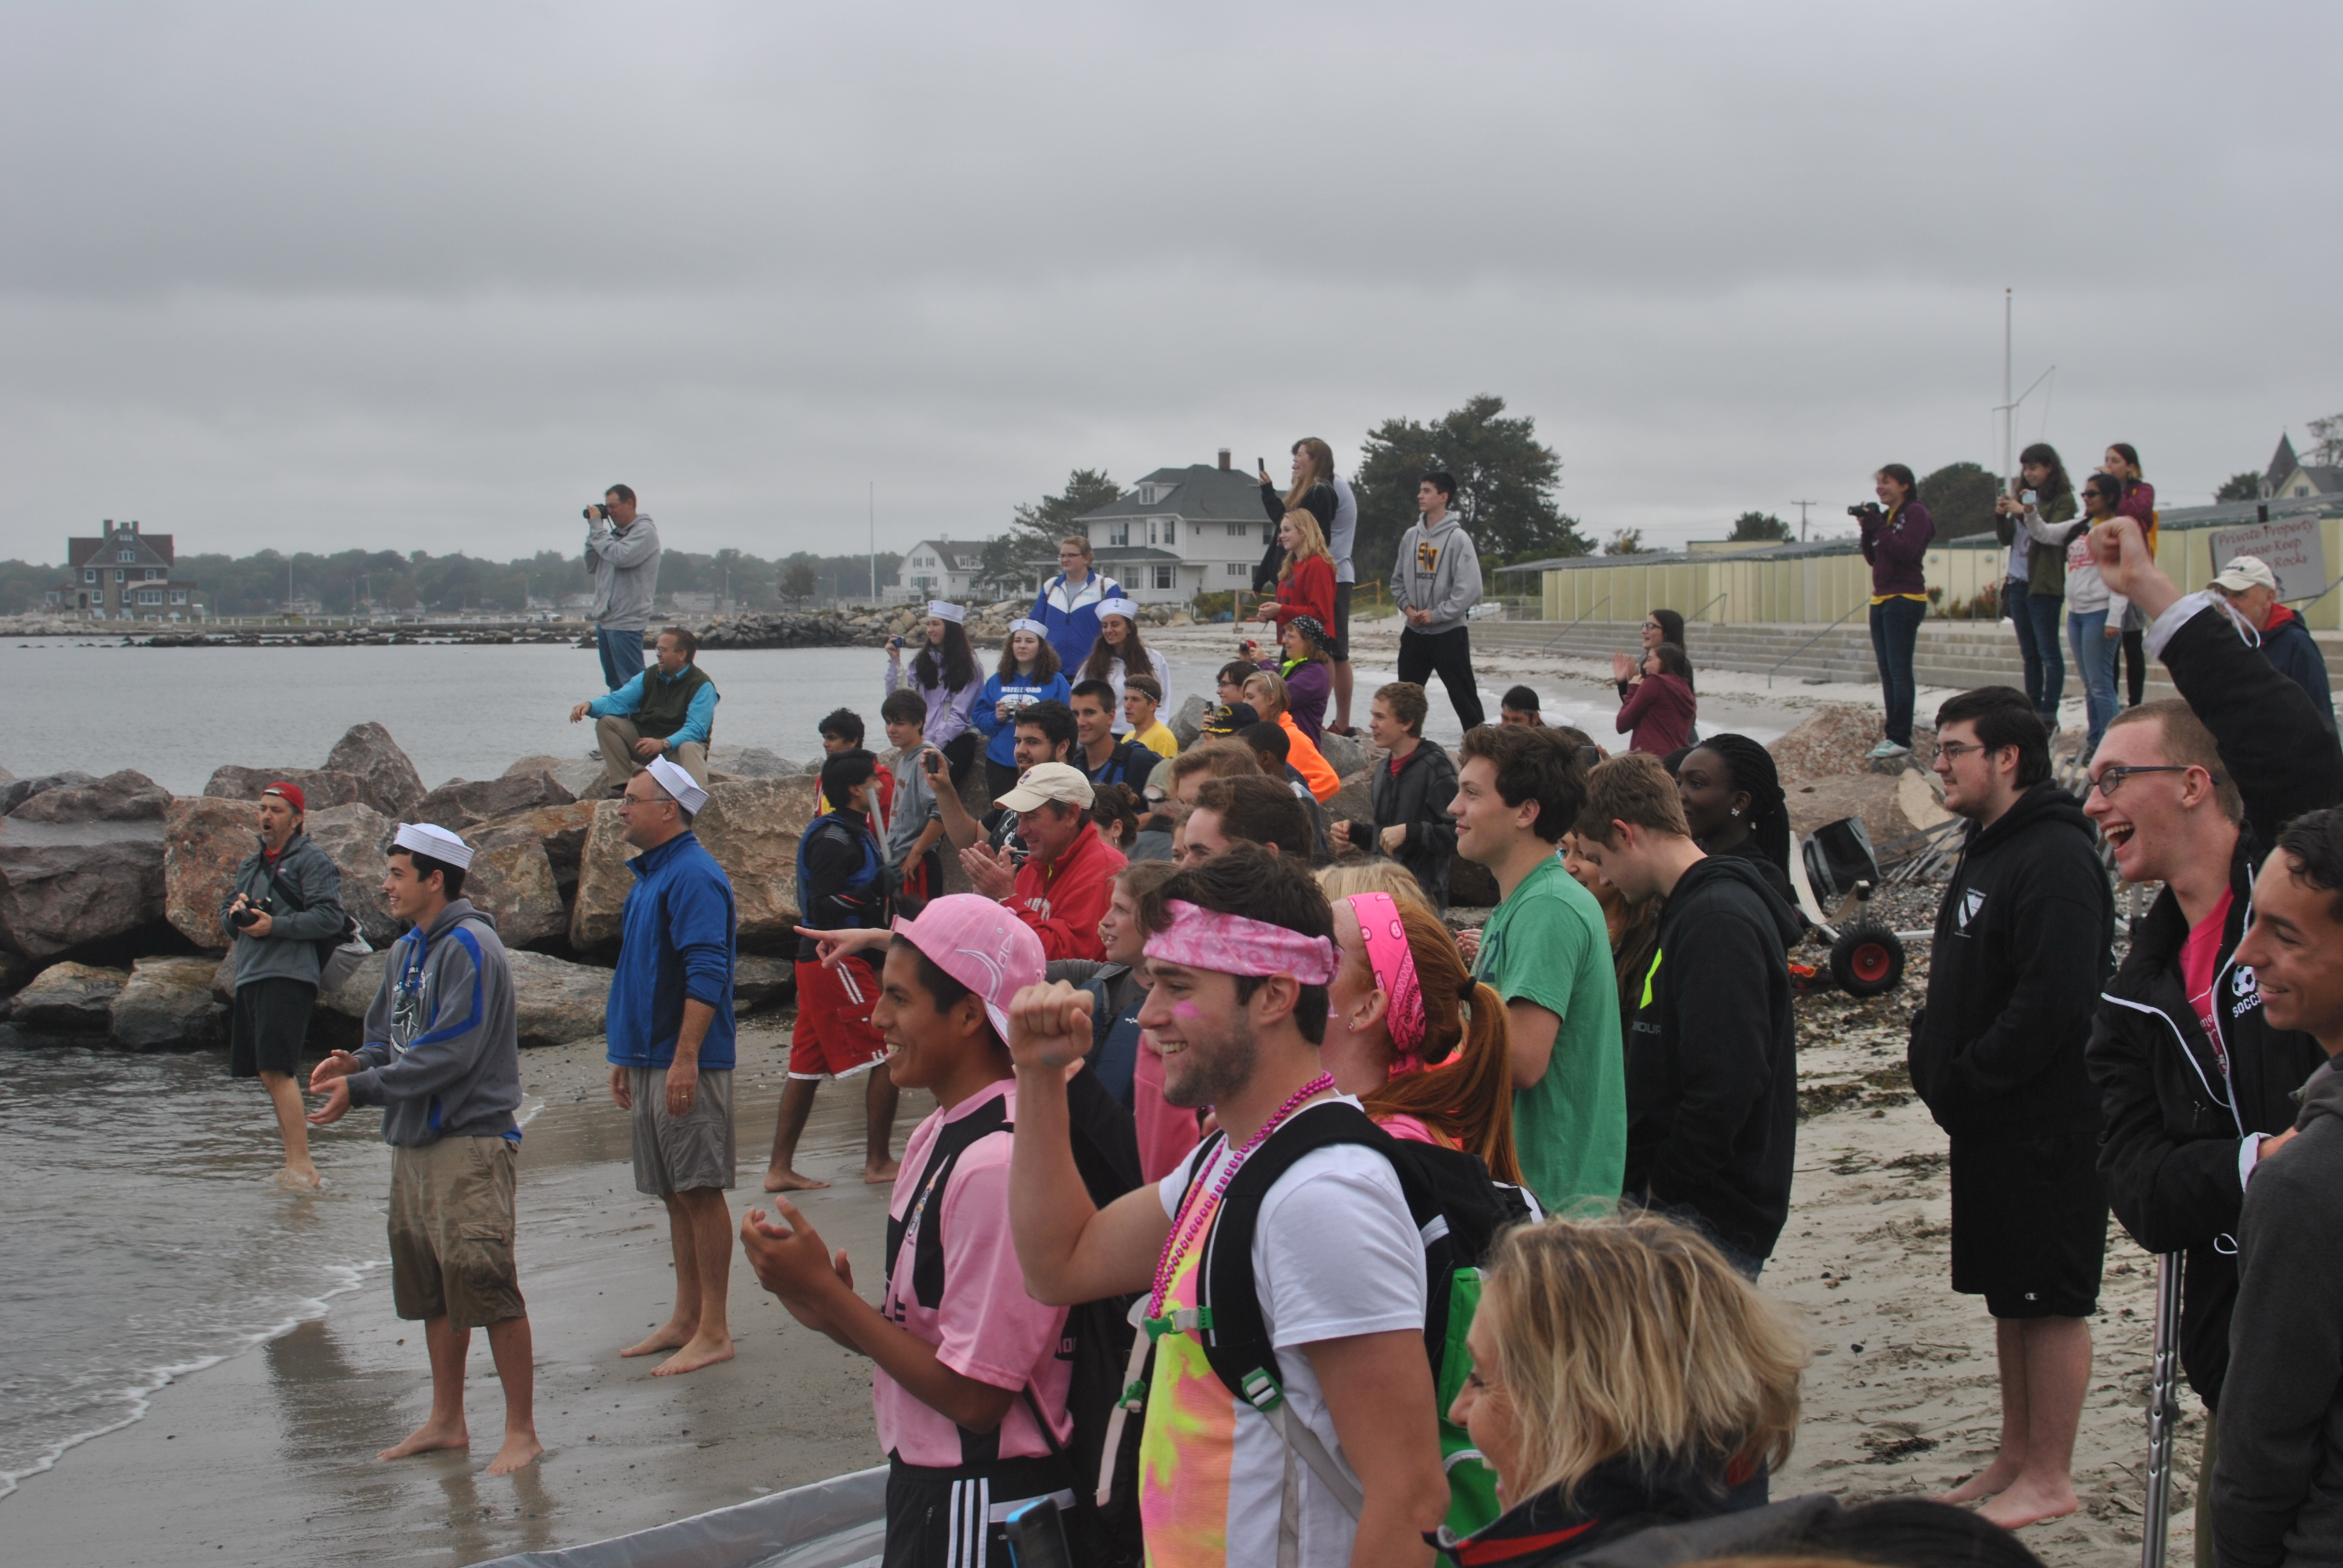 The crowd watching the cardboard boat race